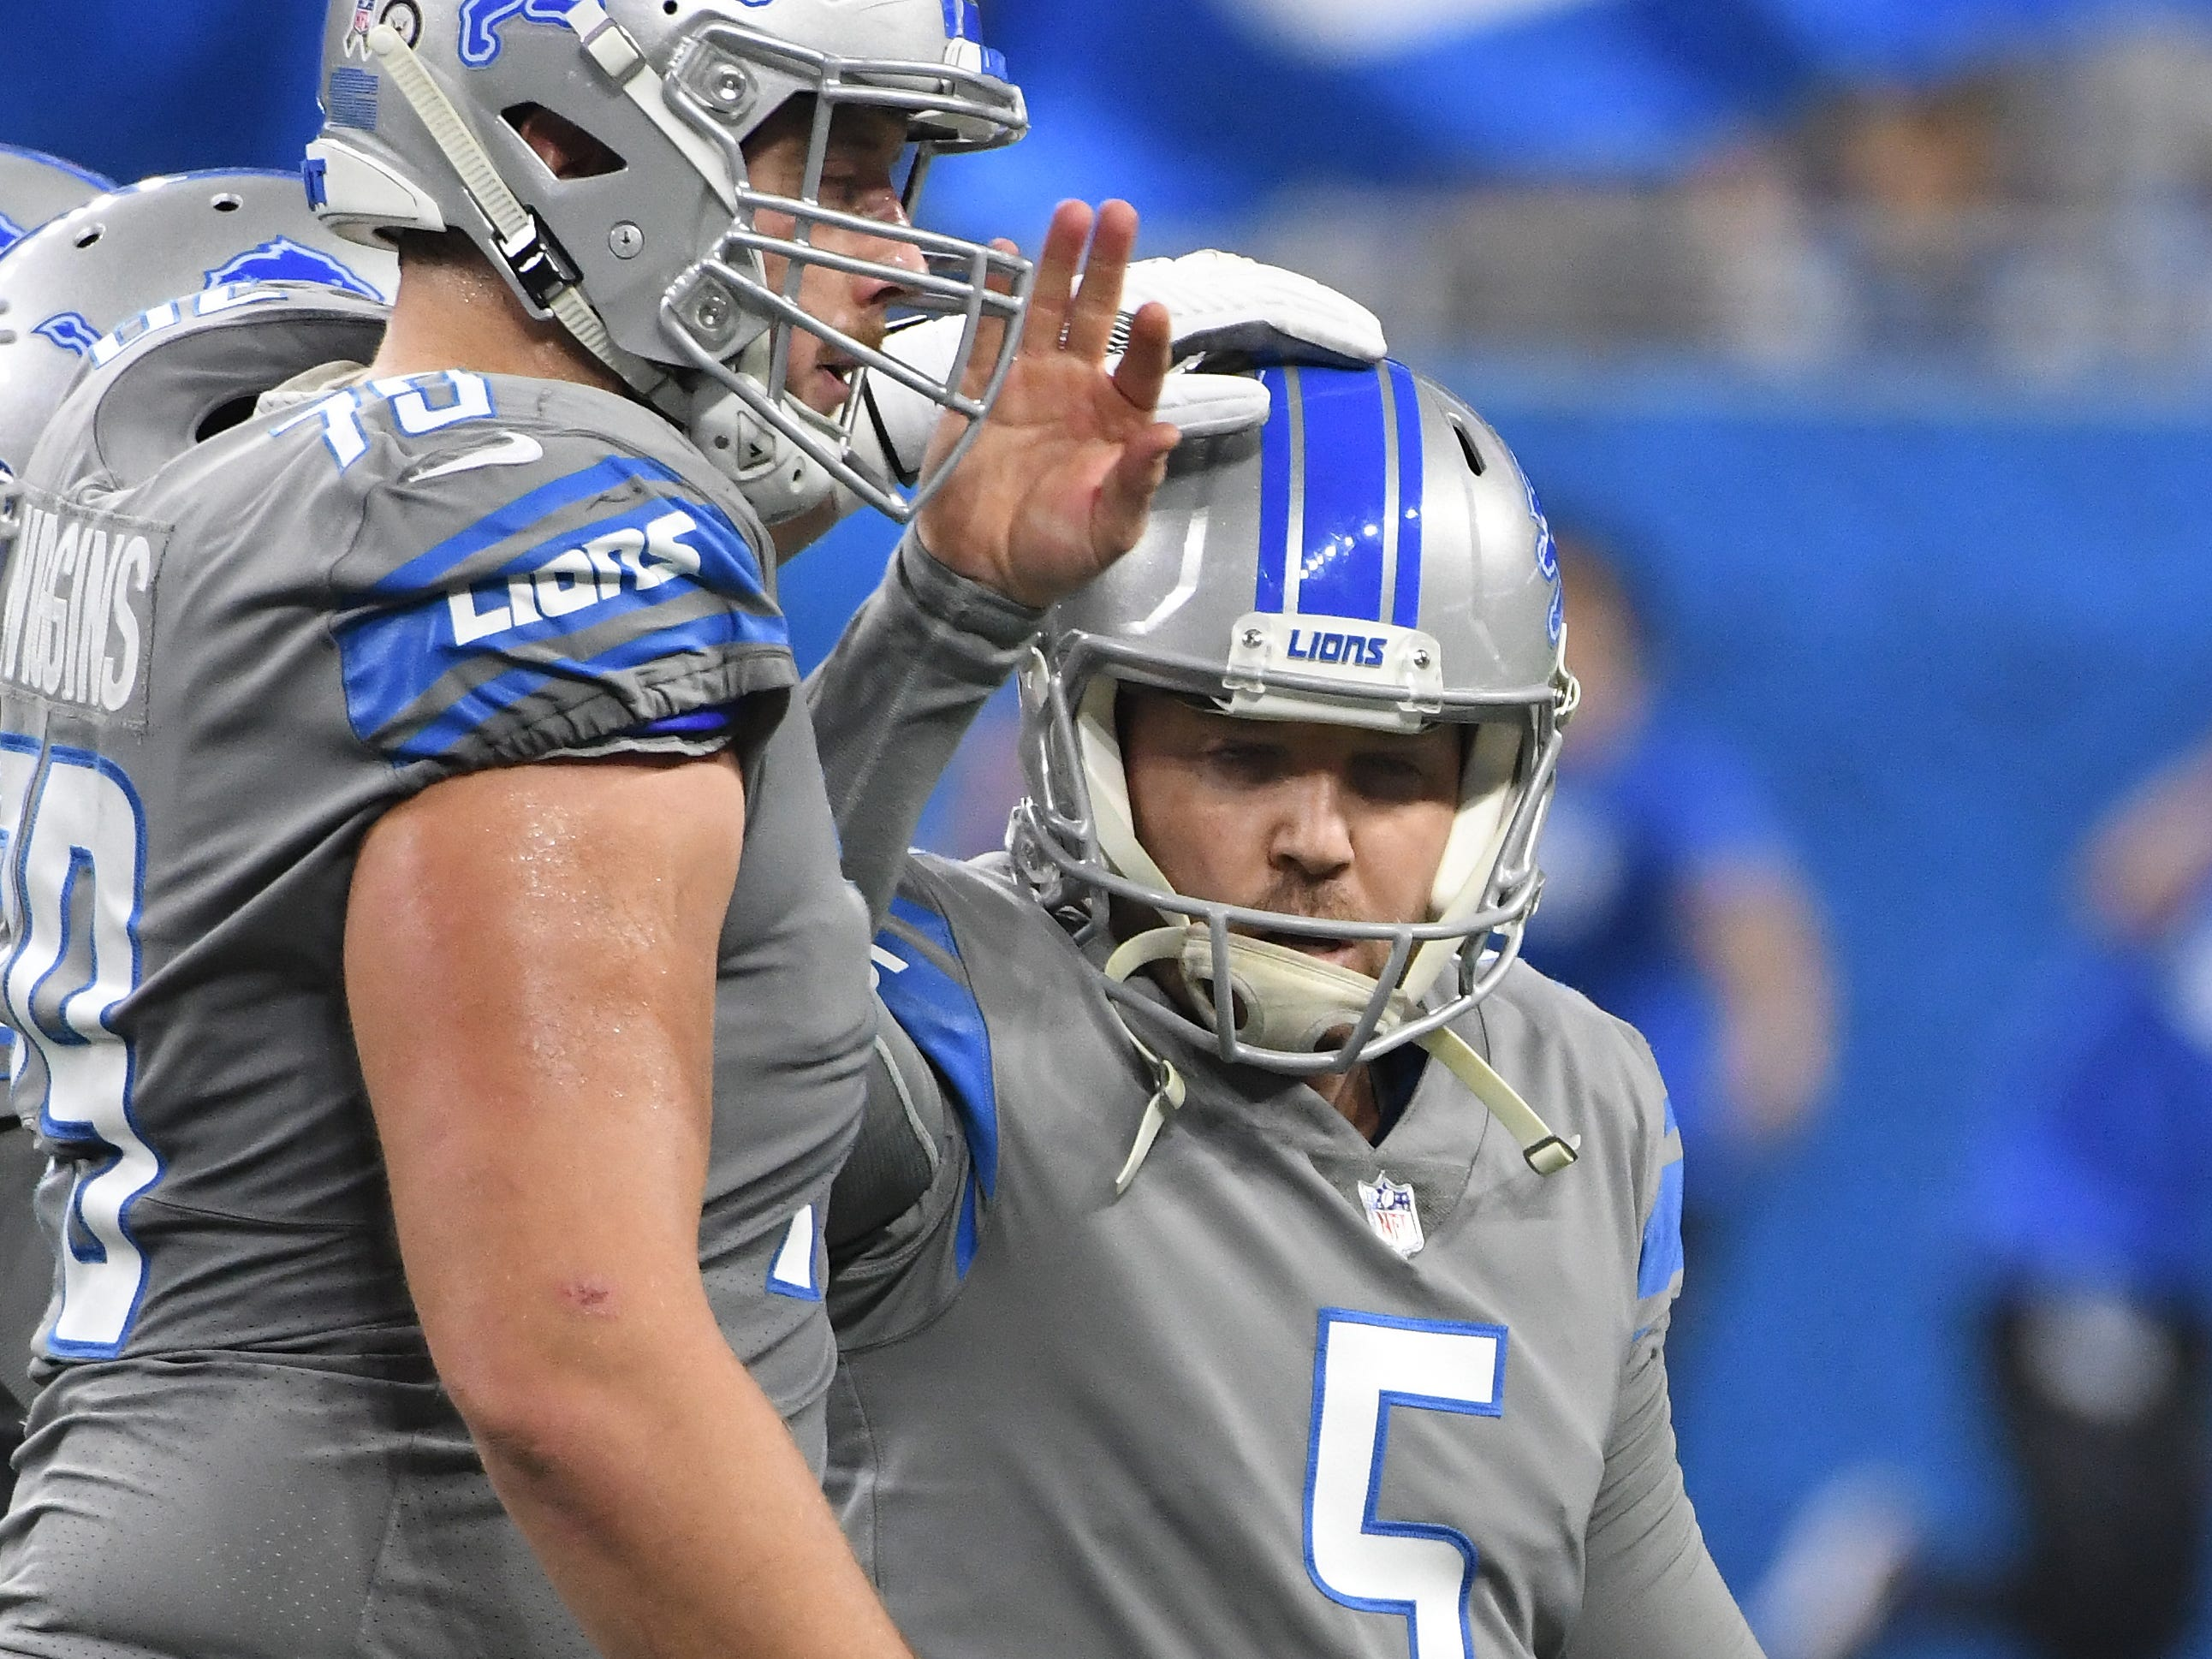 Lions kicker Matt Prater celebrates with teammates after making a field goal in the second quarter to go up 10-7.